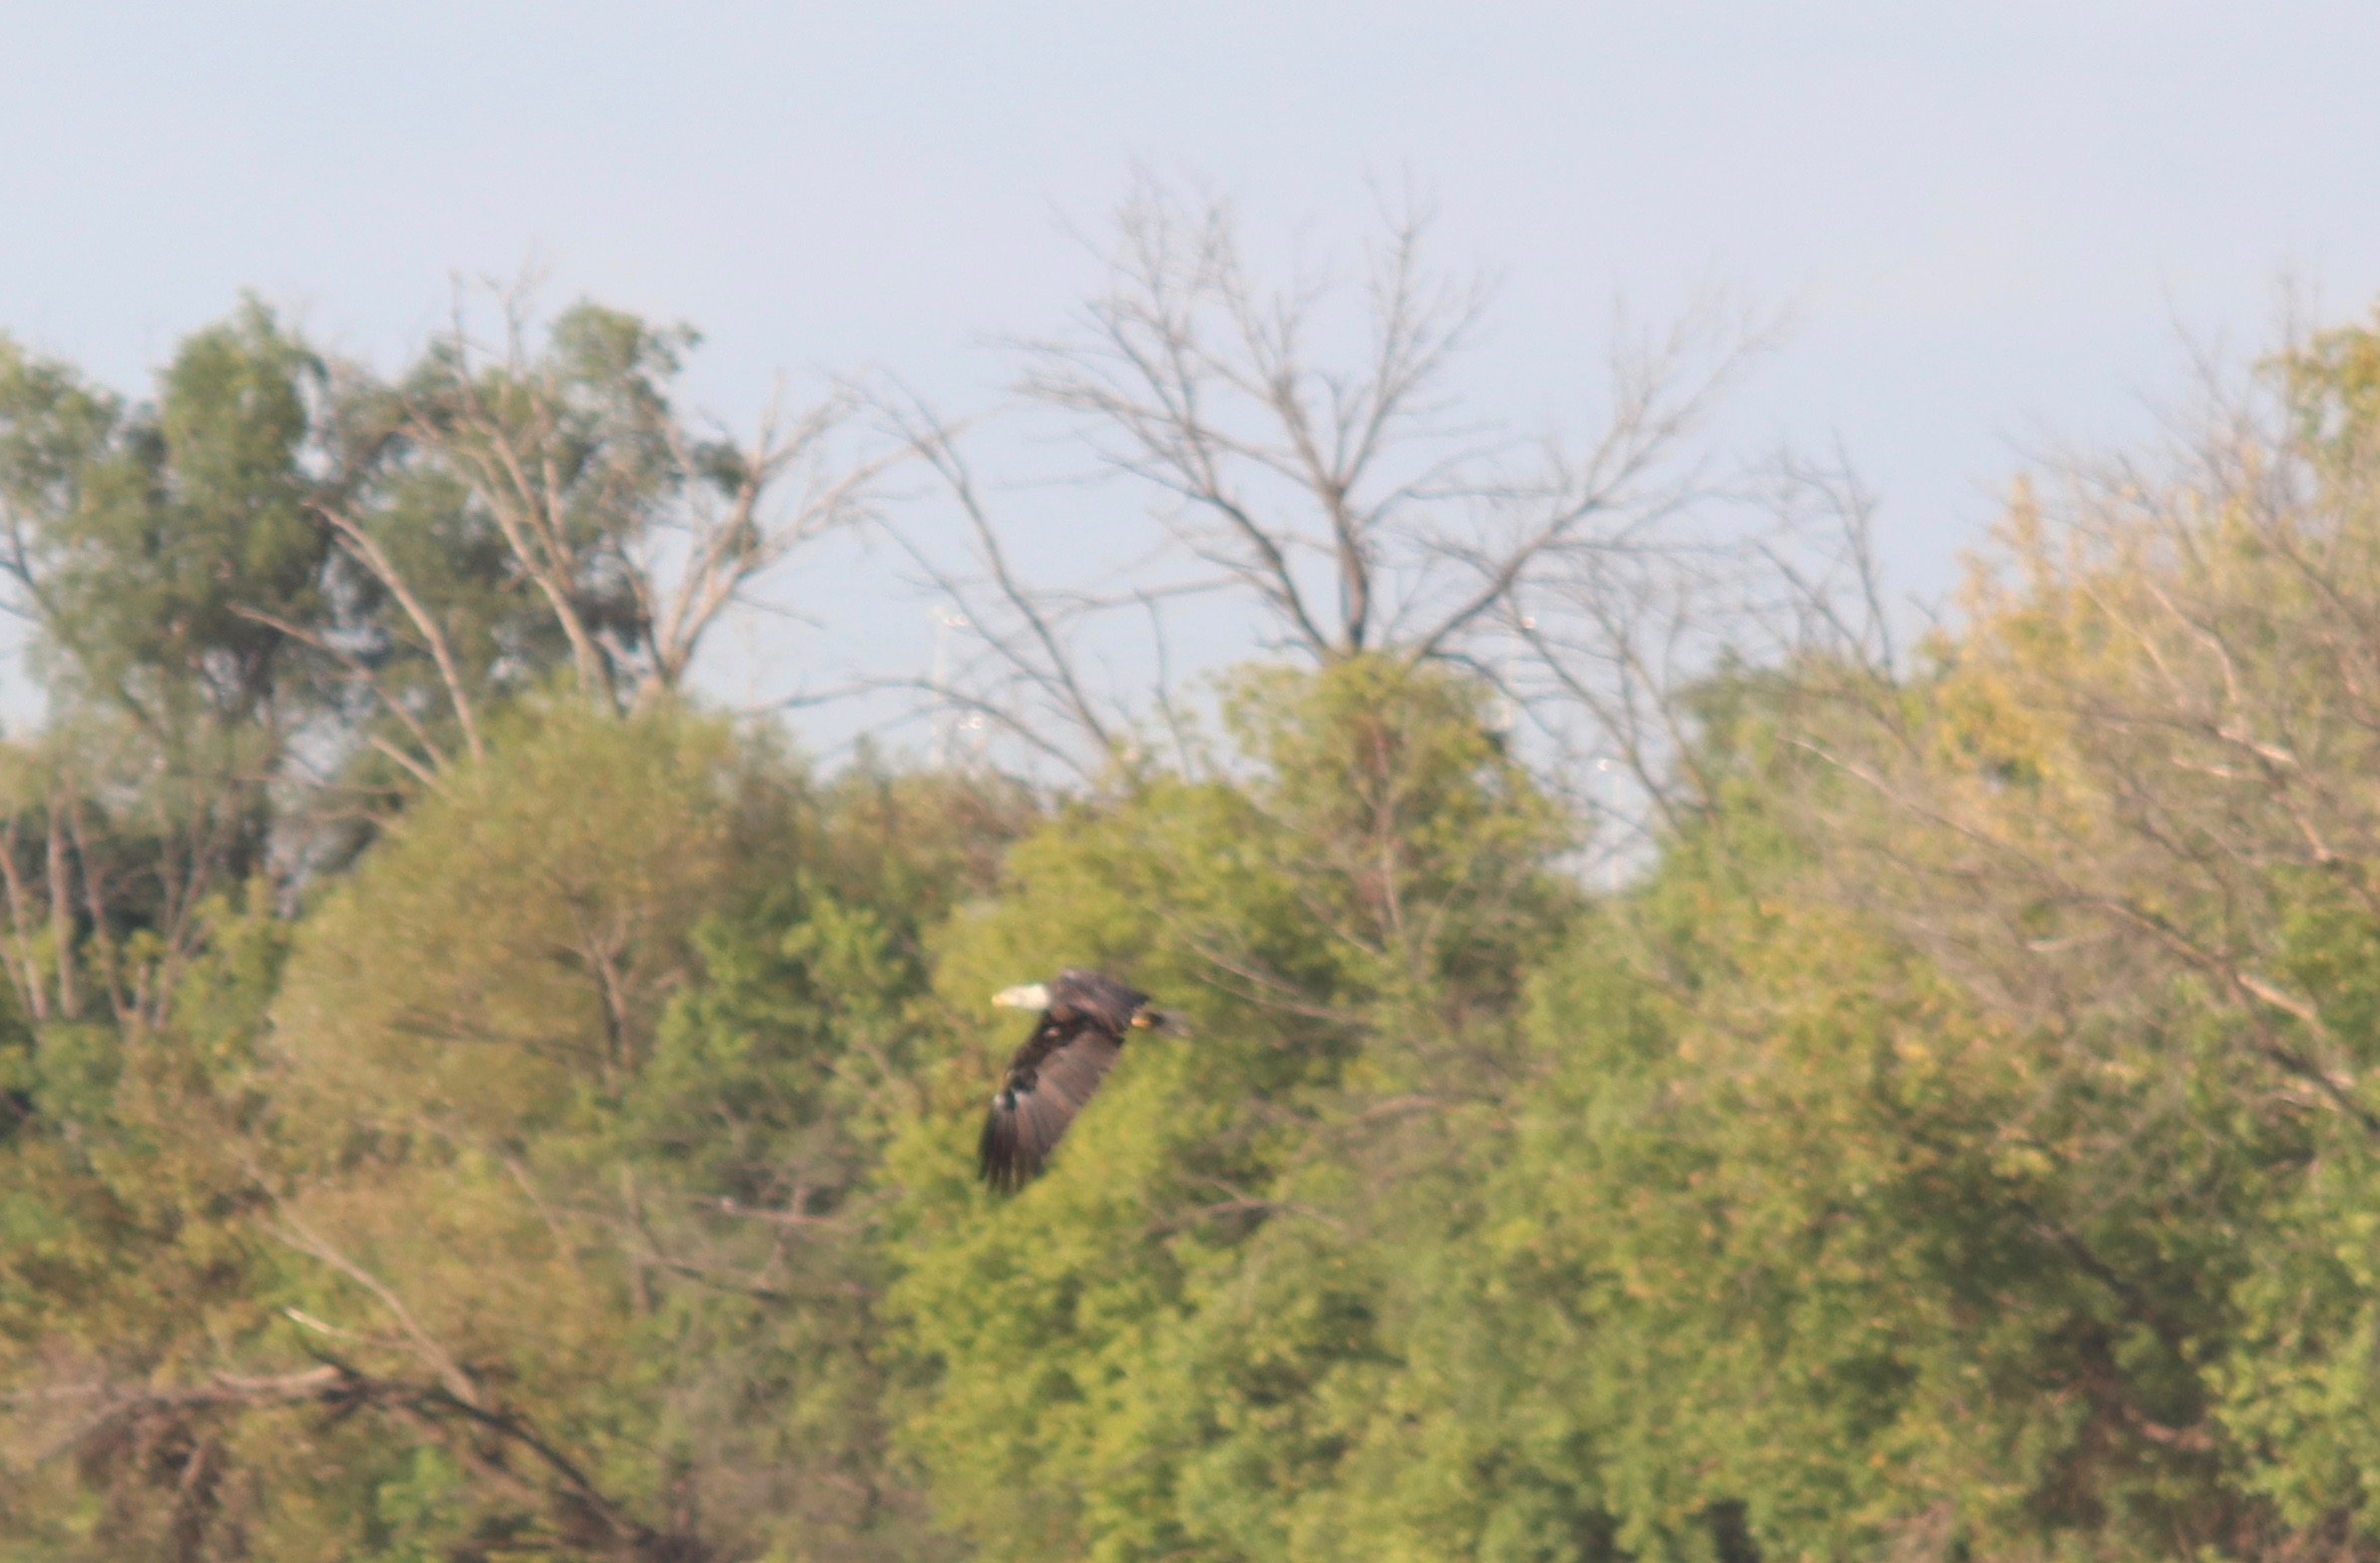 First of many eagle sightings